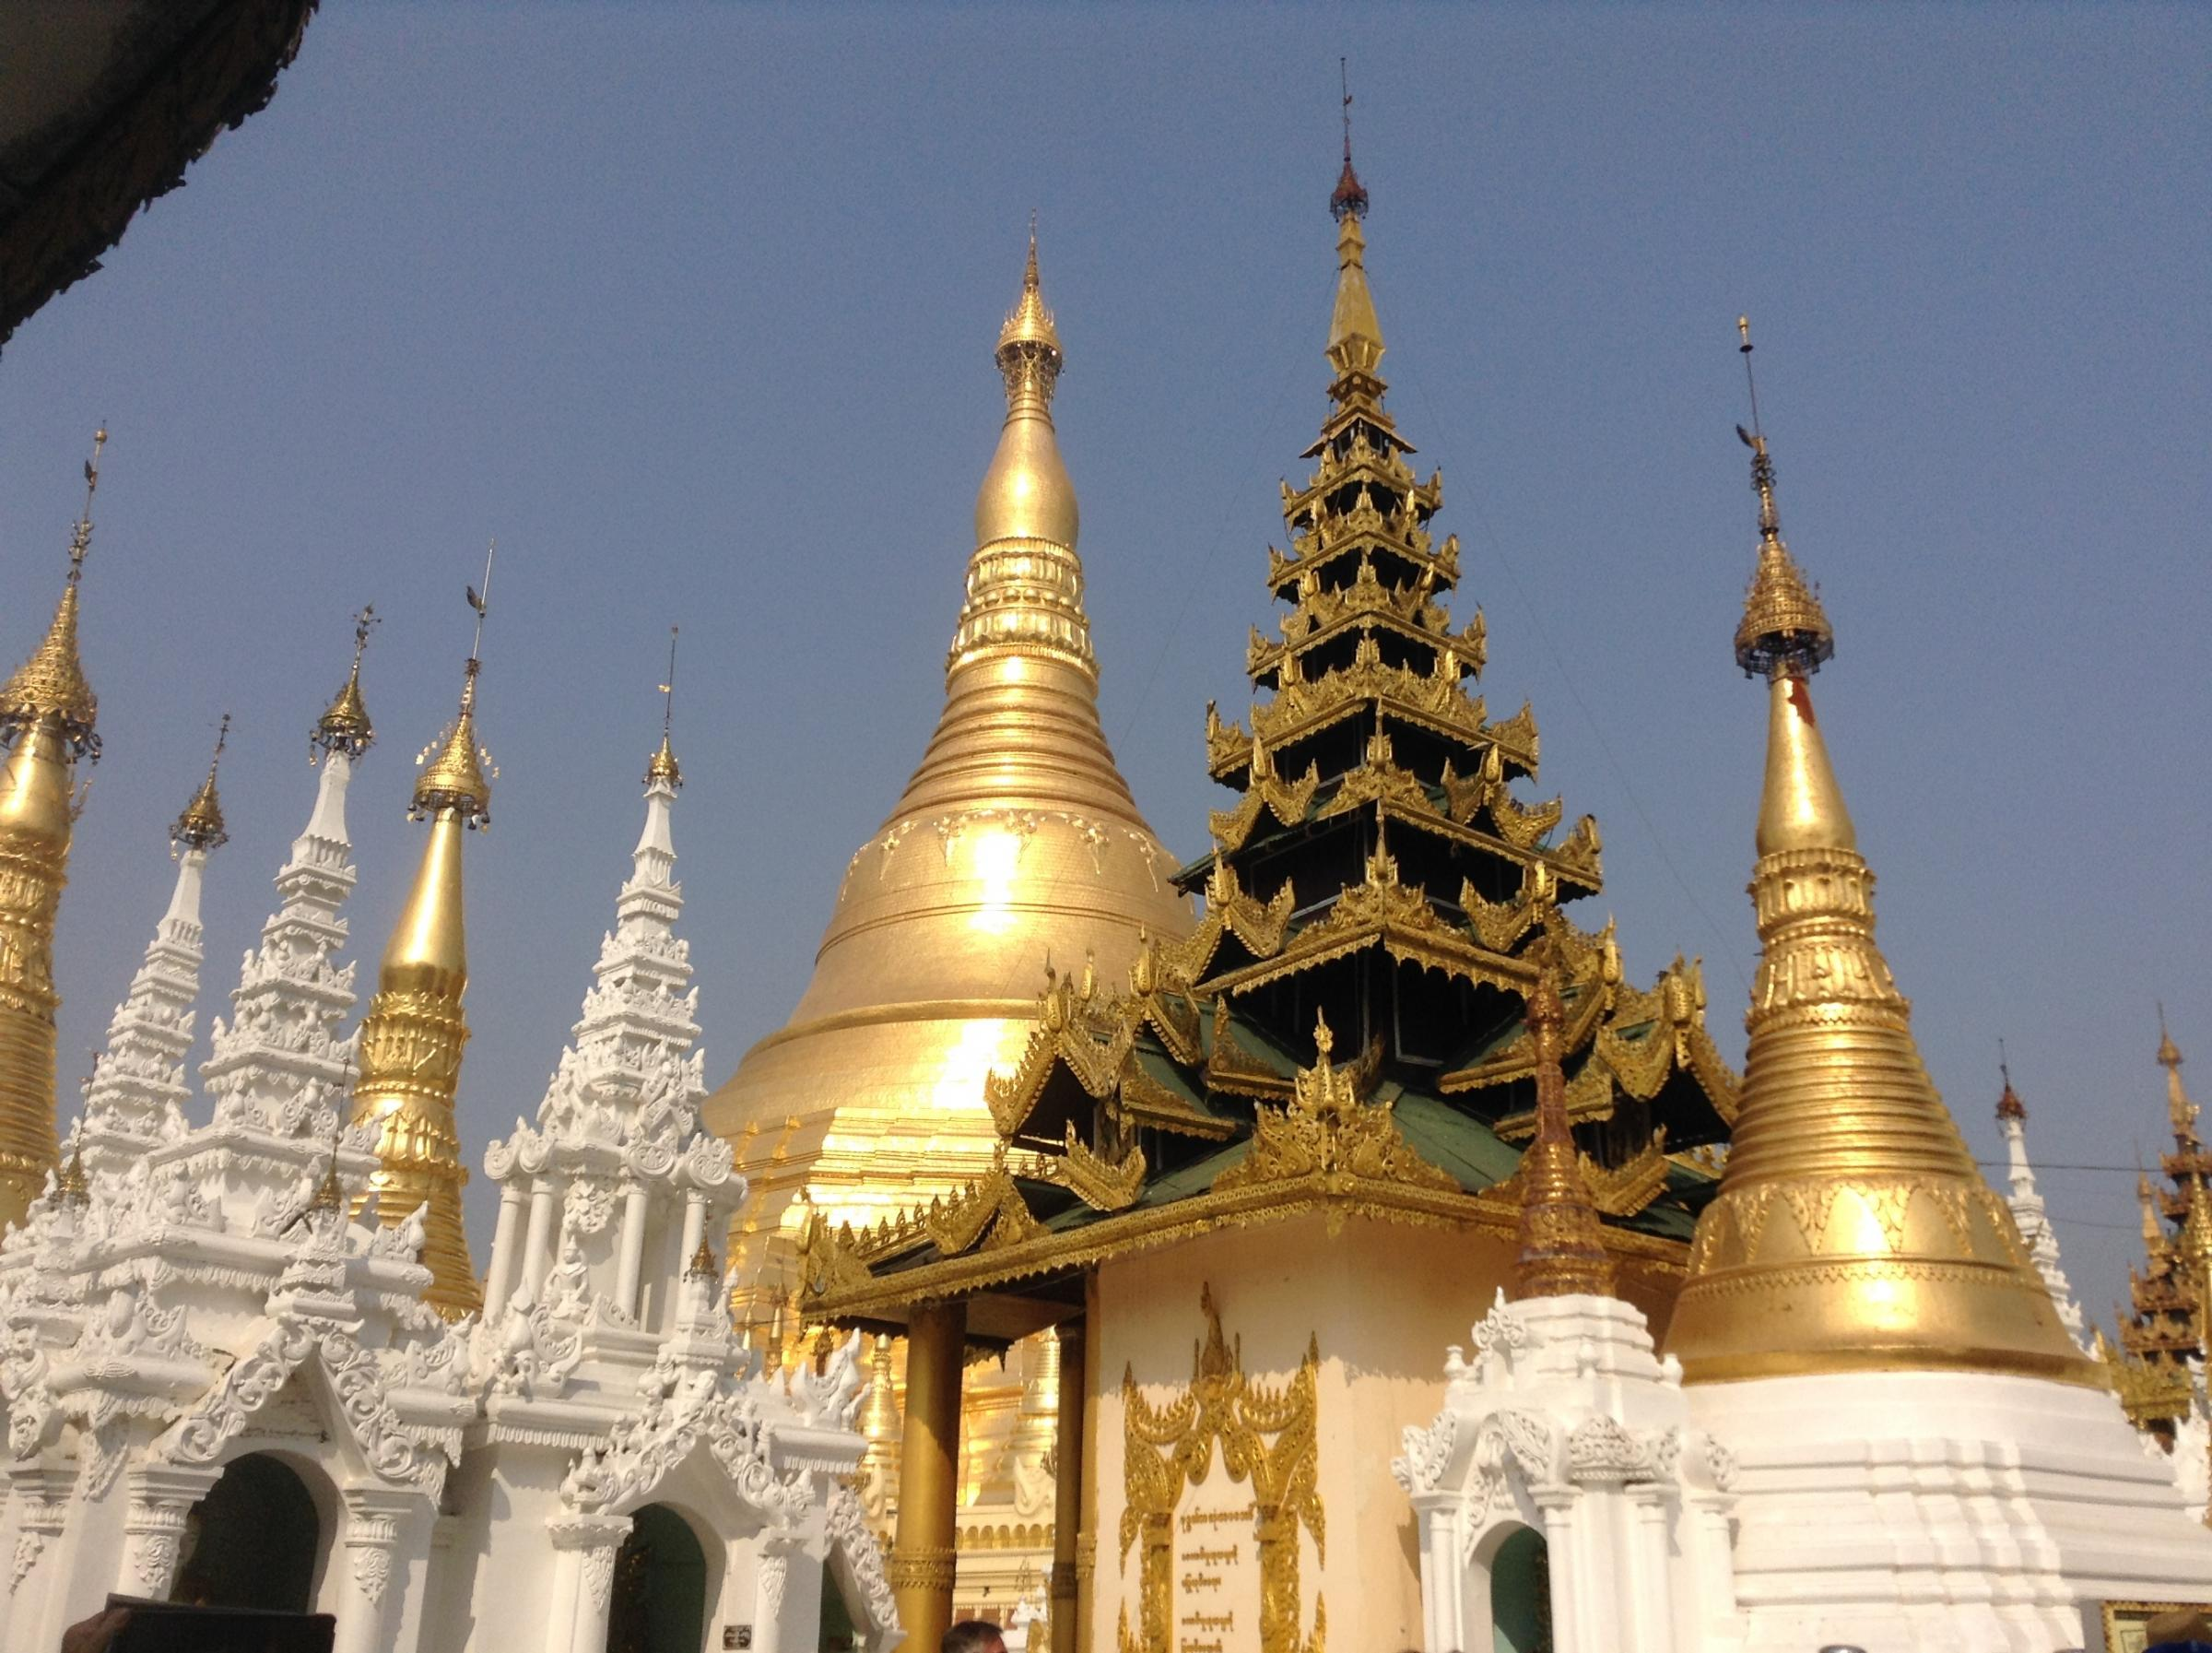 Travel: Sights, sounds and splendours in the magical and mystical Far East